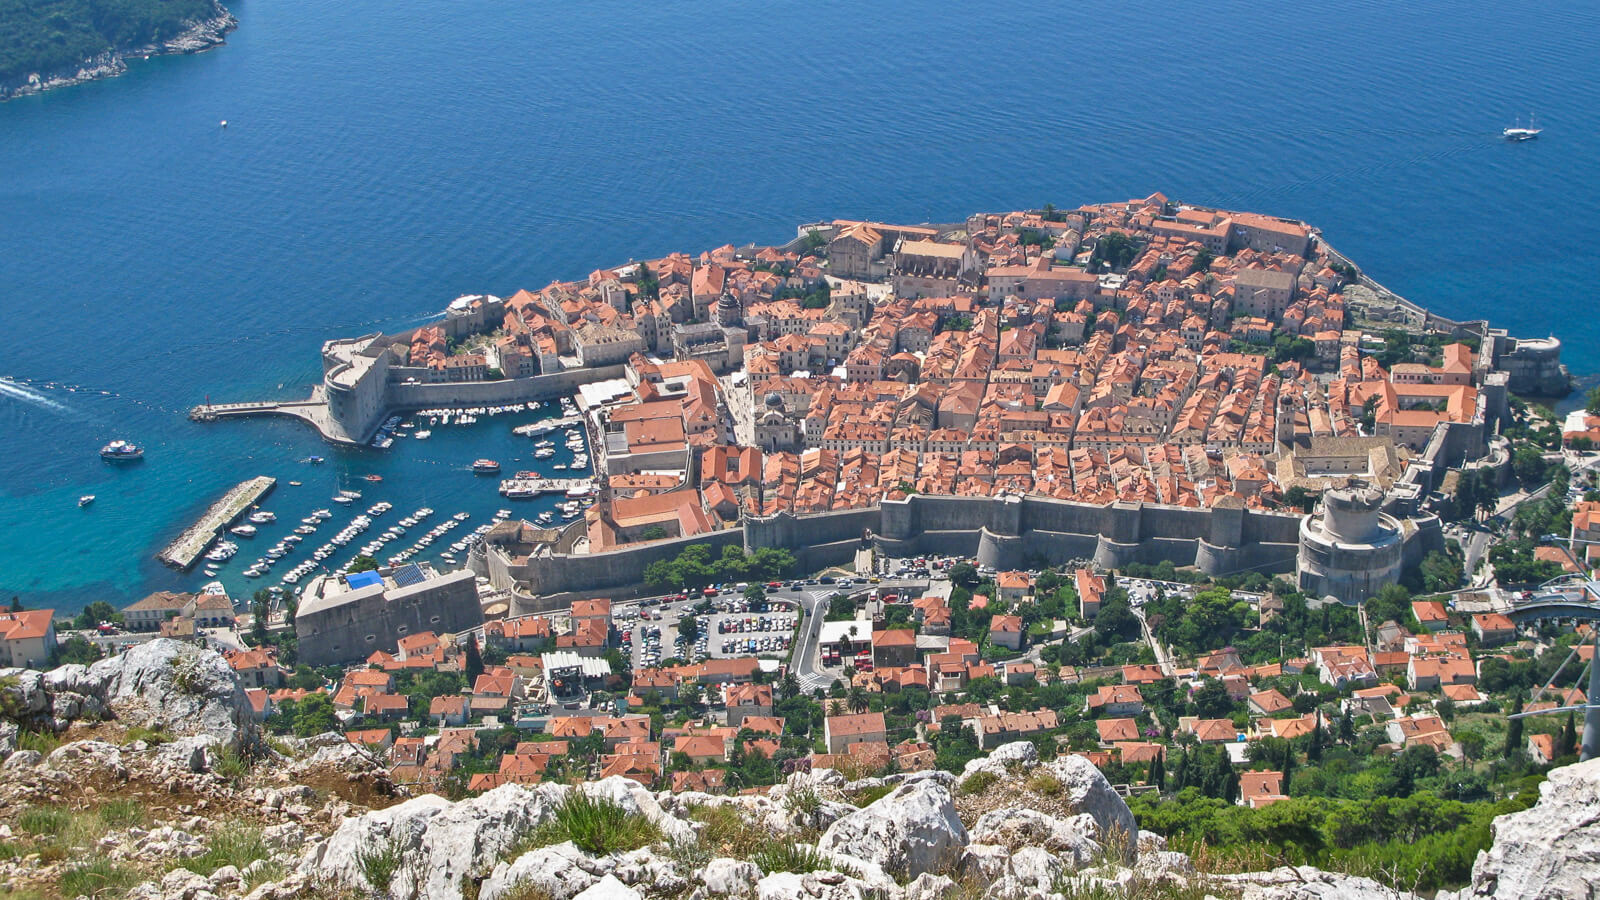 Sky high view of the old town of Dubrovnik, Croatia